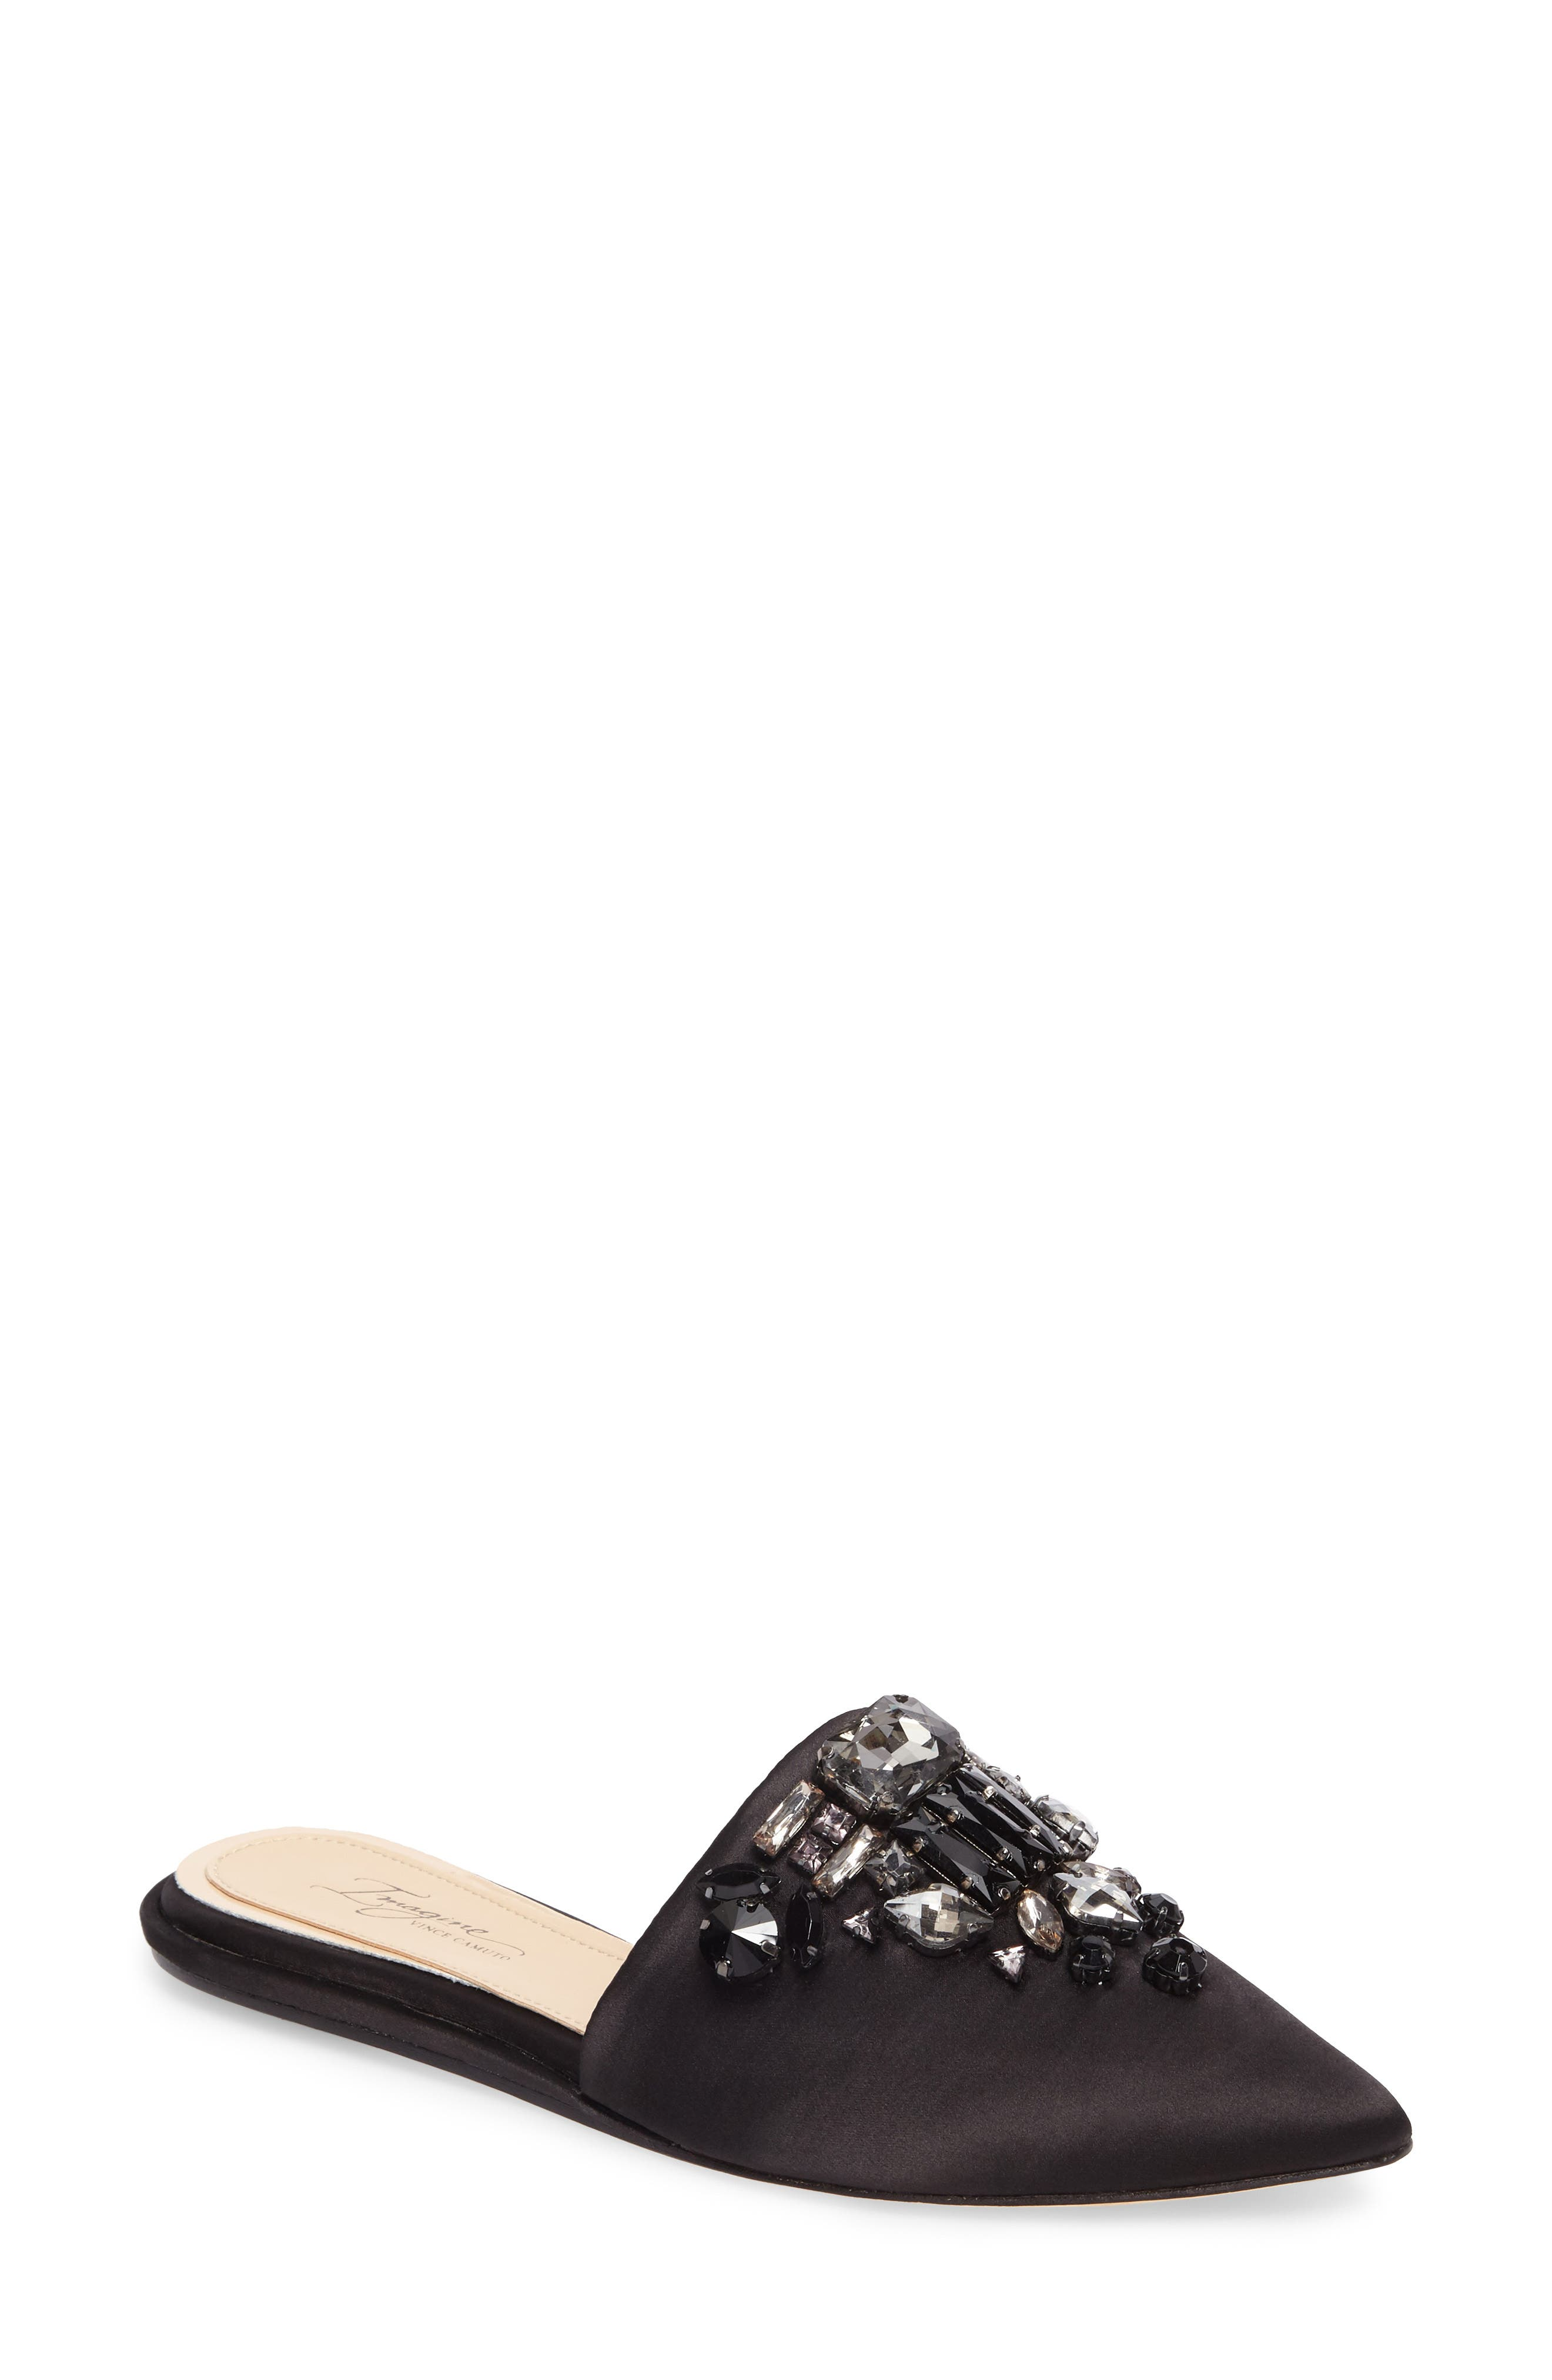 Alternate Image 1 Selected - Imagine Vince Camuto Caide Embellished Mule (Women)